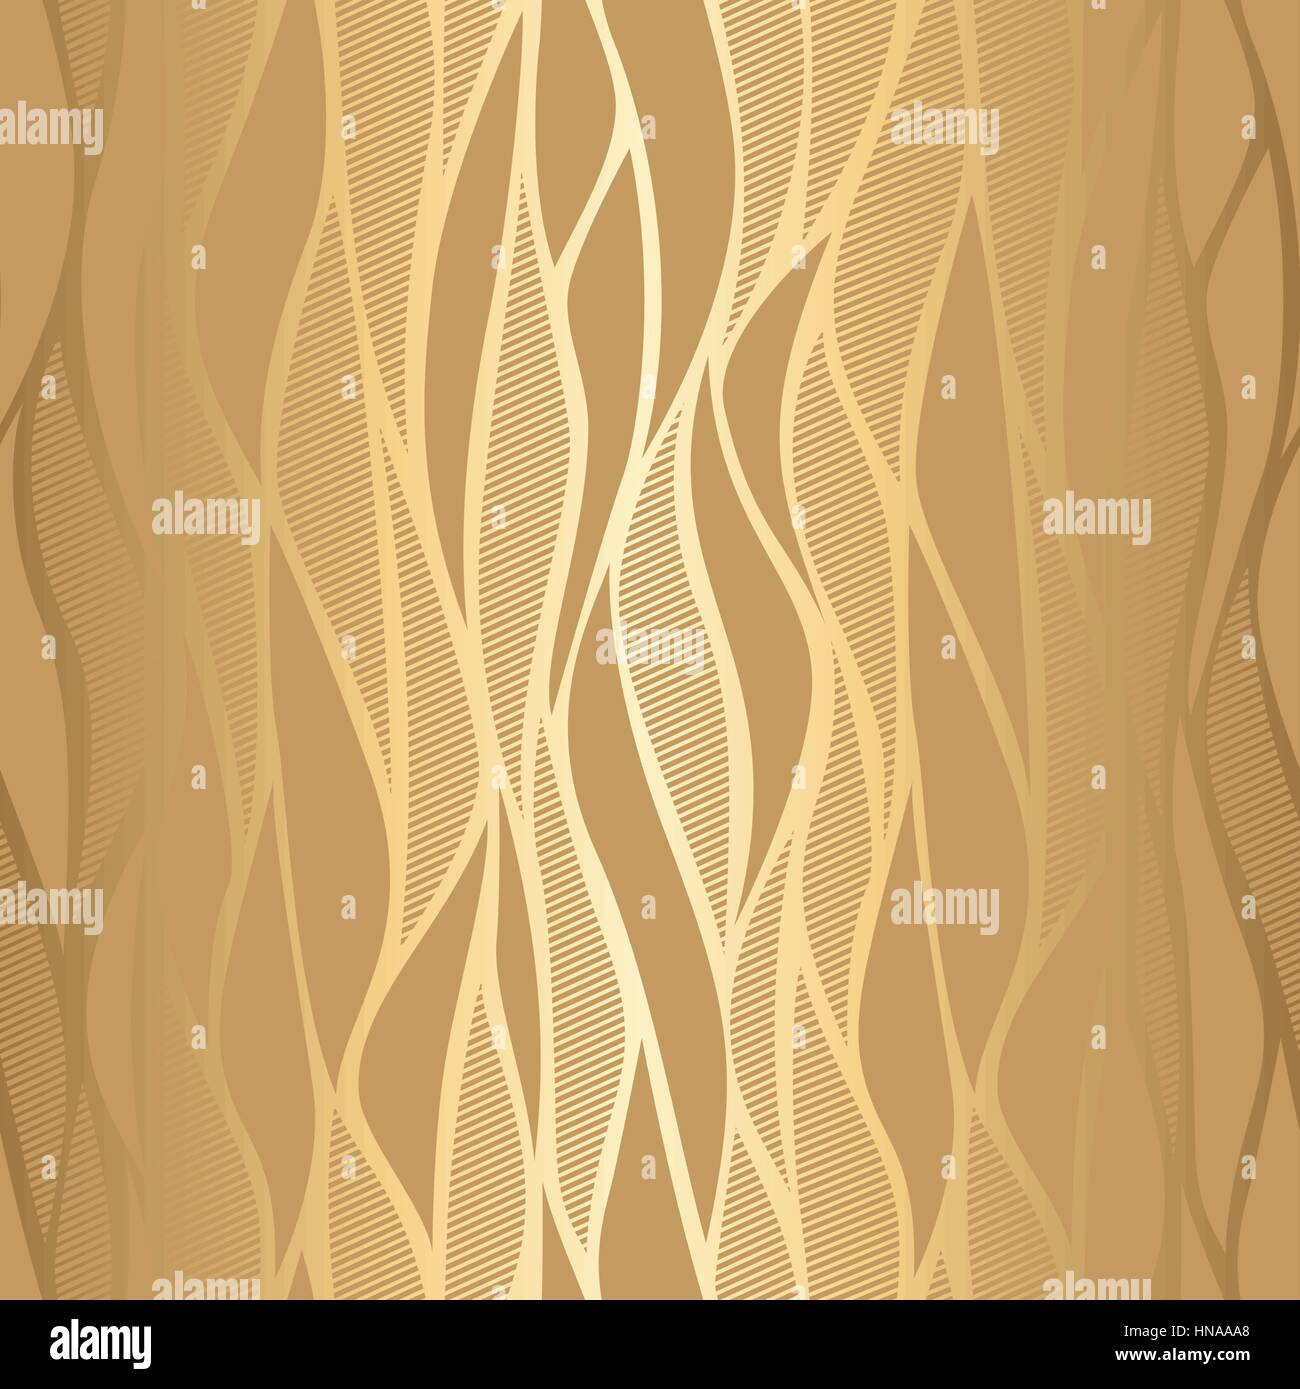 Luxury Golden Wallpaper Vintage Seamless Wave Pattern